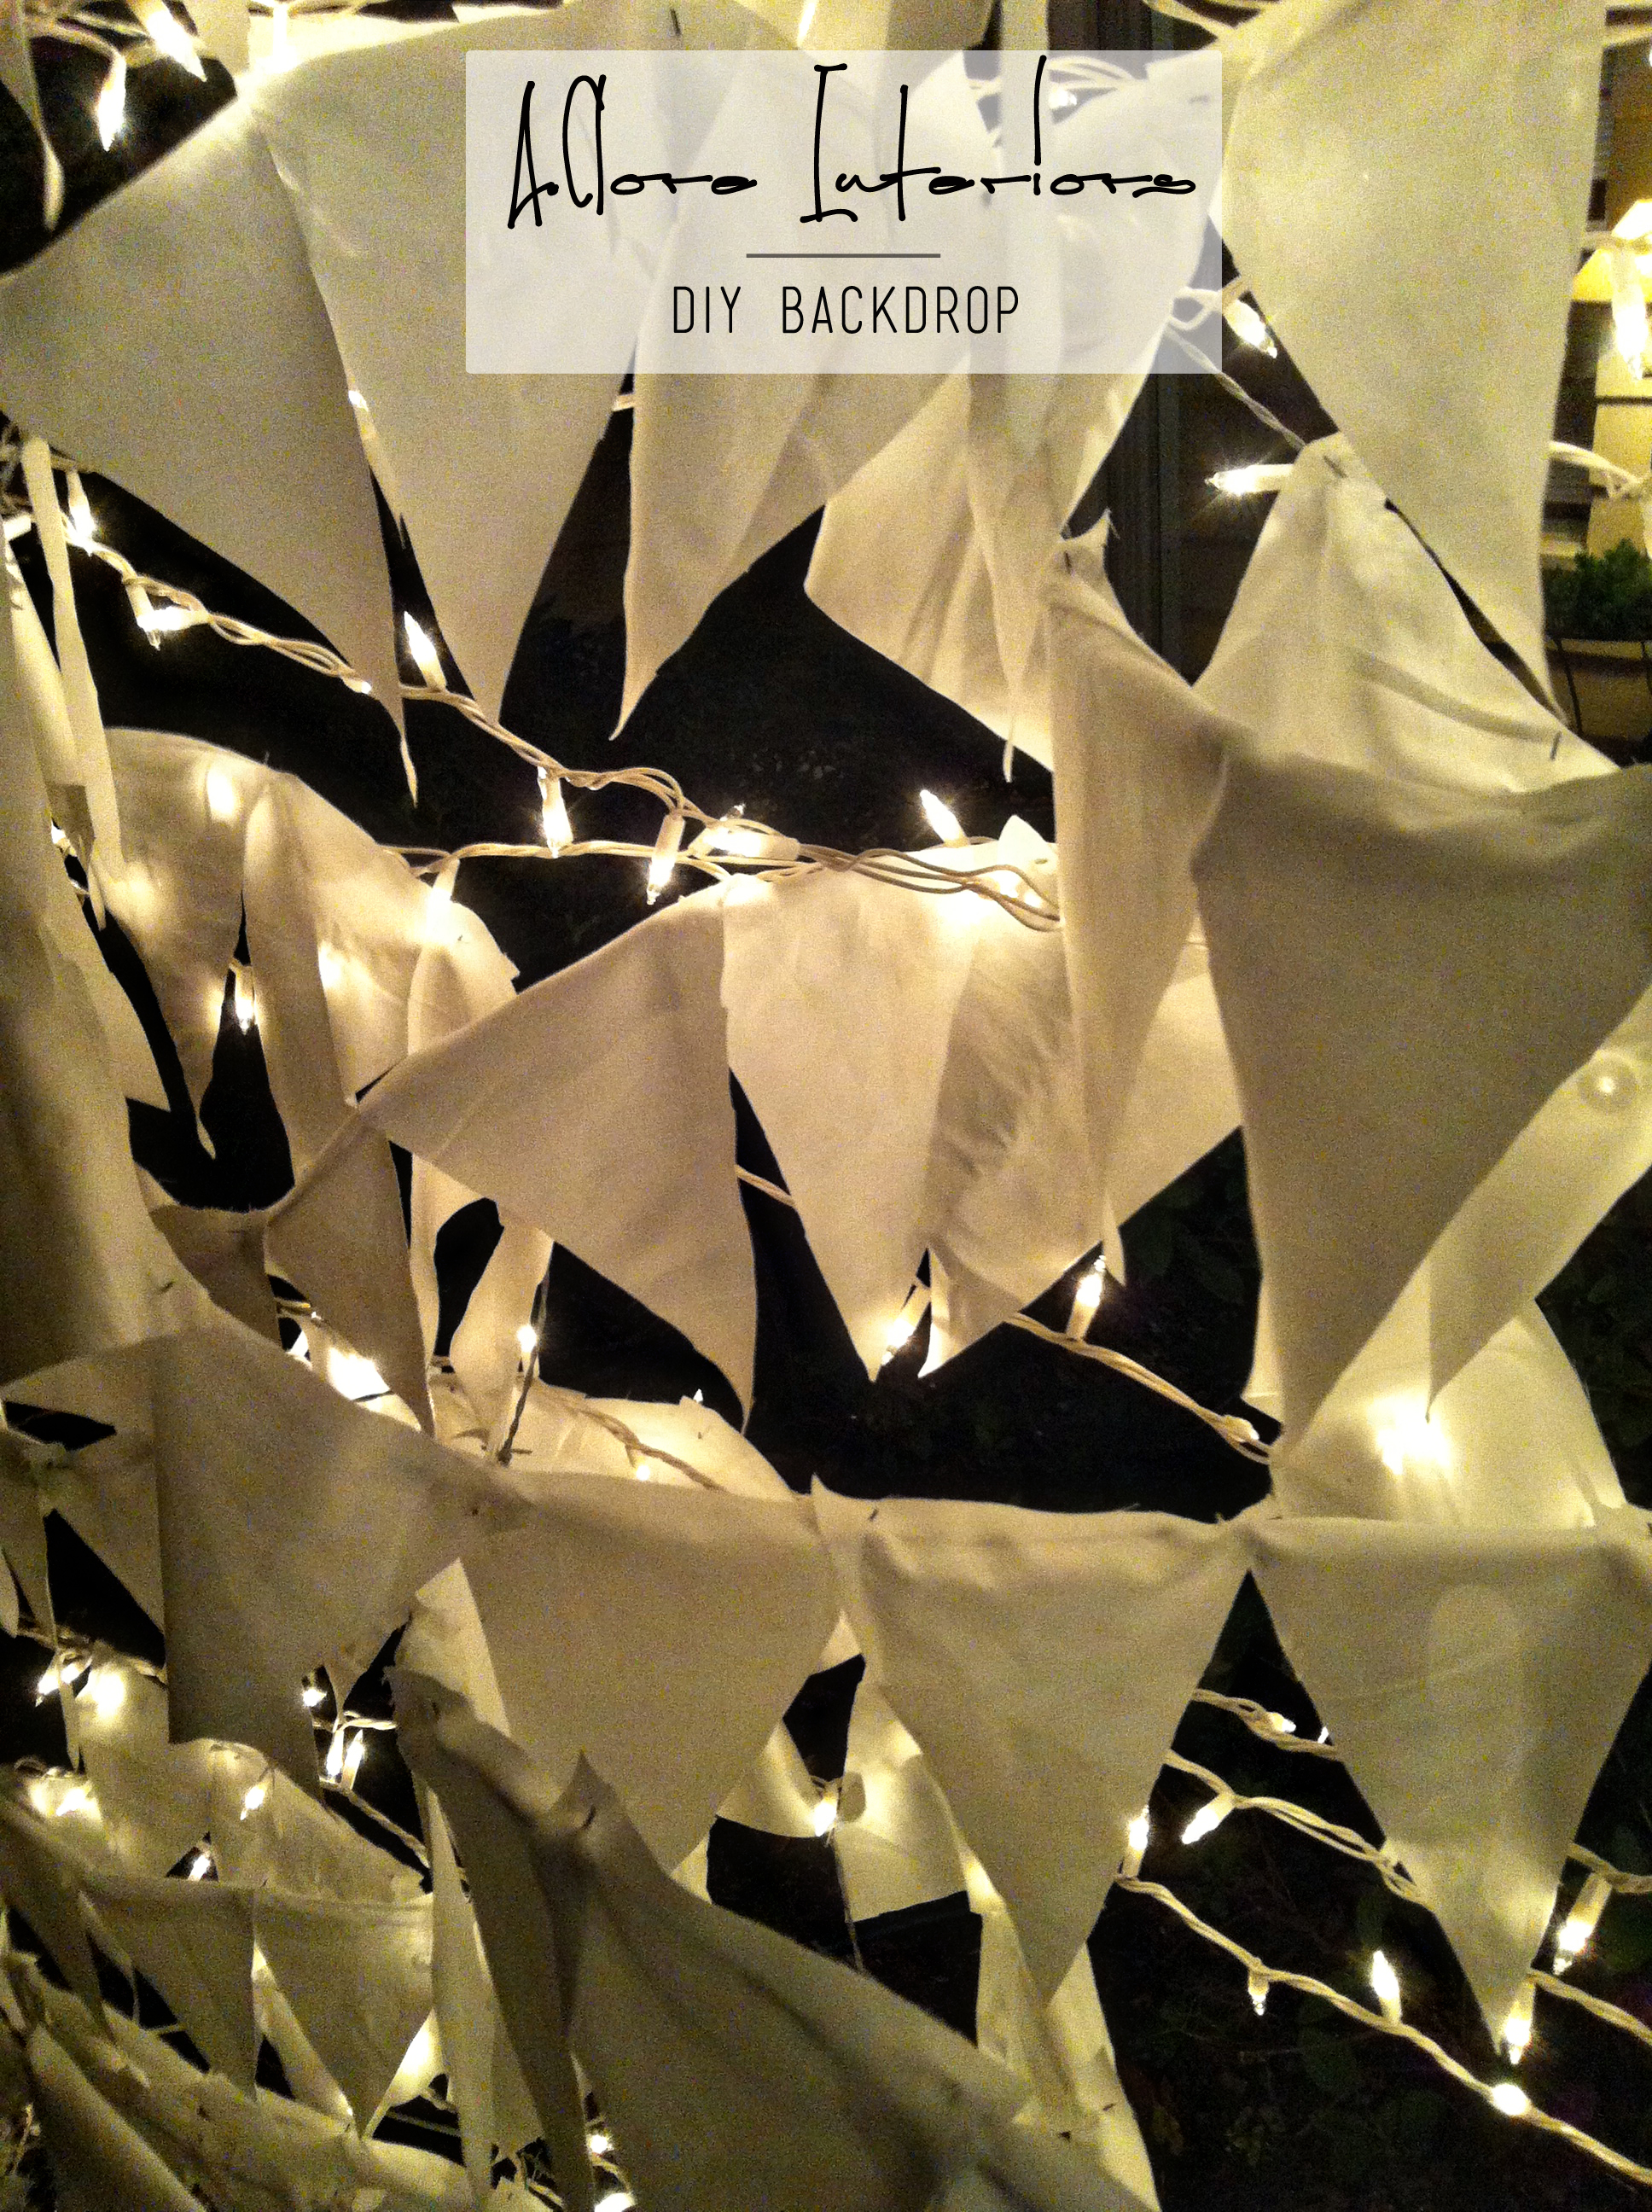 DIY Backdrop A.Clore Interiors